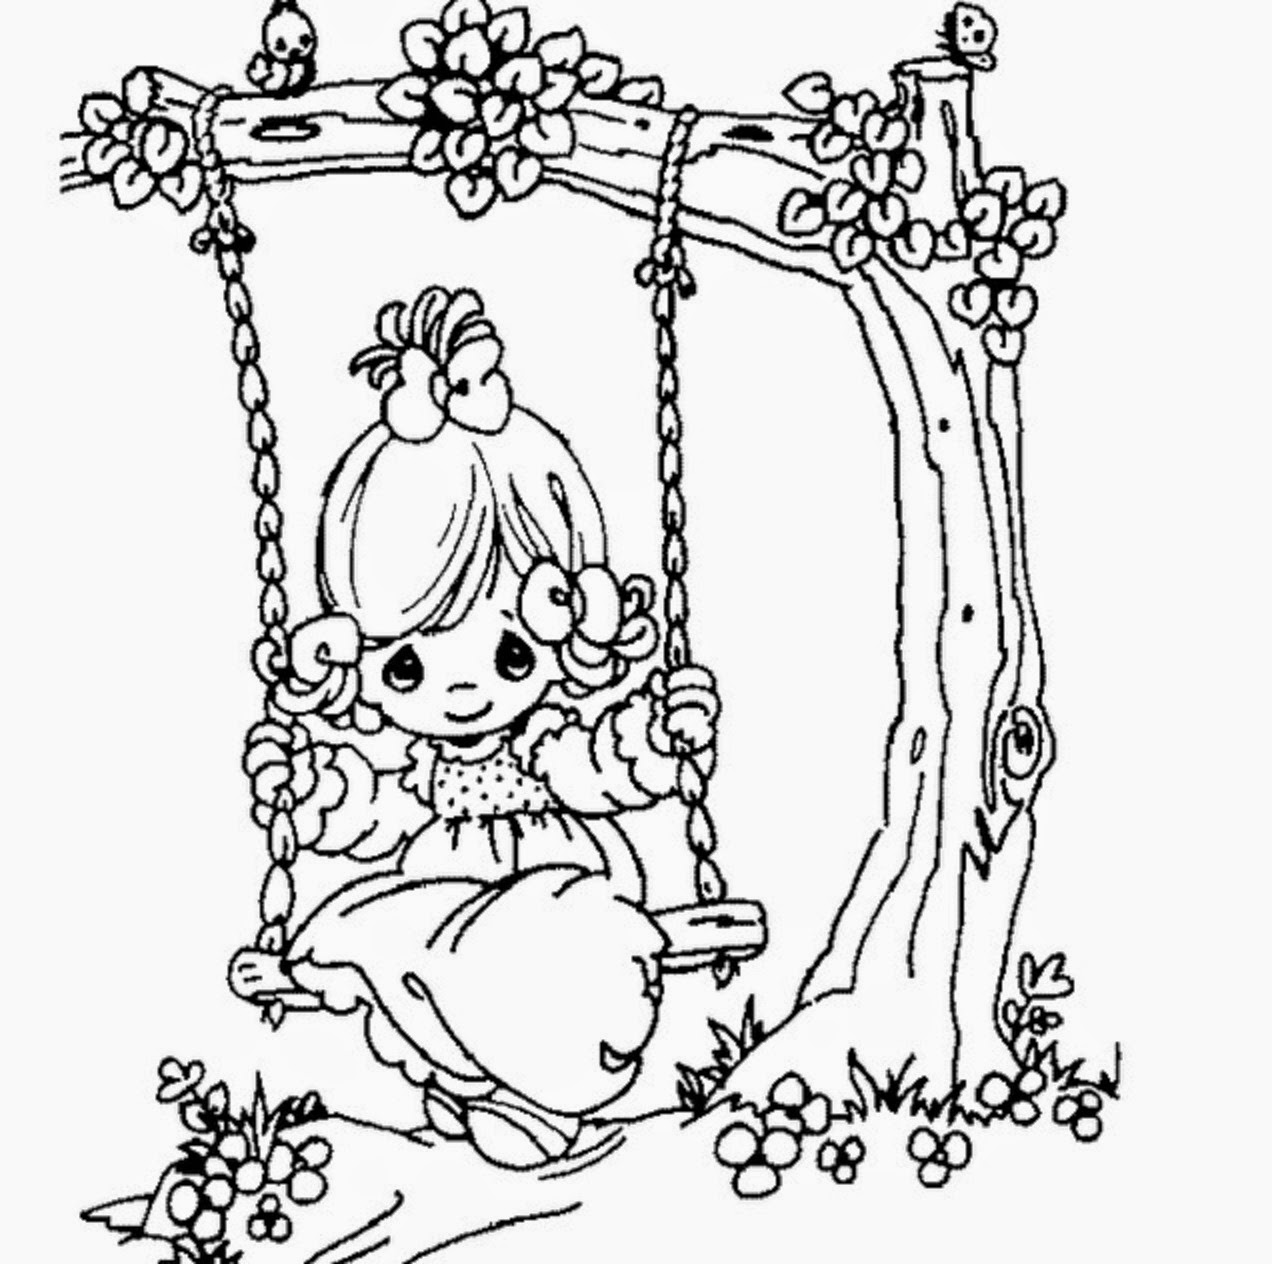 beautiful precious moments girl coloring page for kids of a cute cartoon colour drawing hd wallpaper - Drawing And Colouring Pictures For Kids